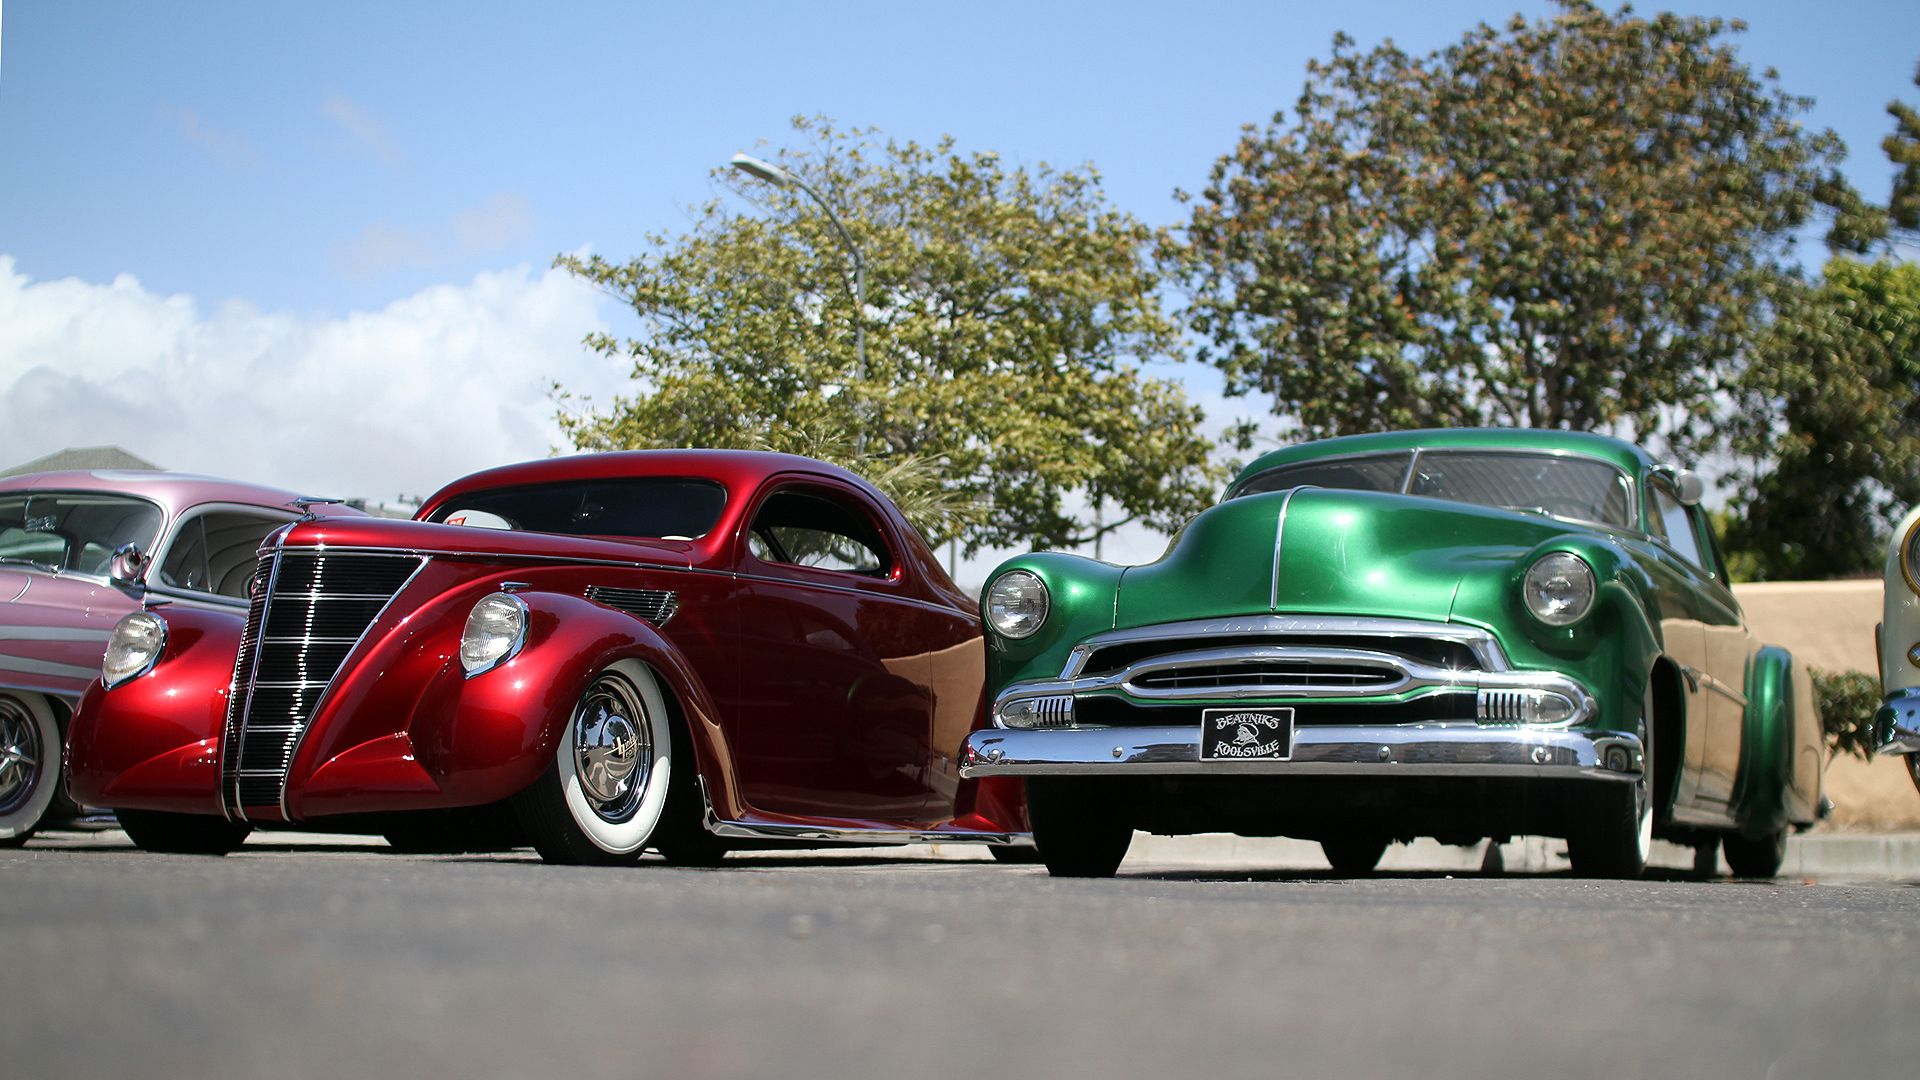 Vintage Classics Car | Classic Vintage Cars Wallpaper | HD Car Wallpapers